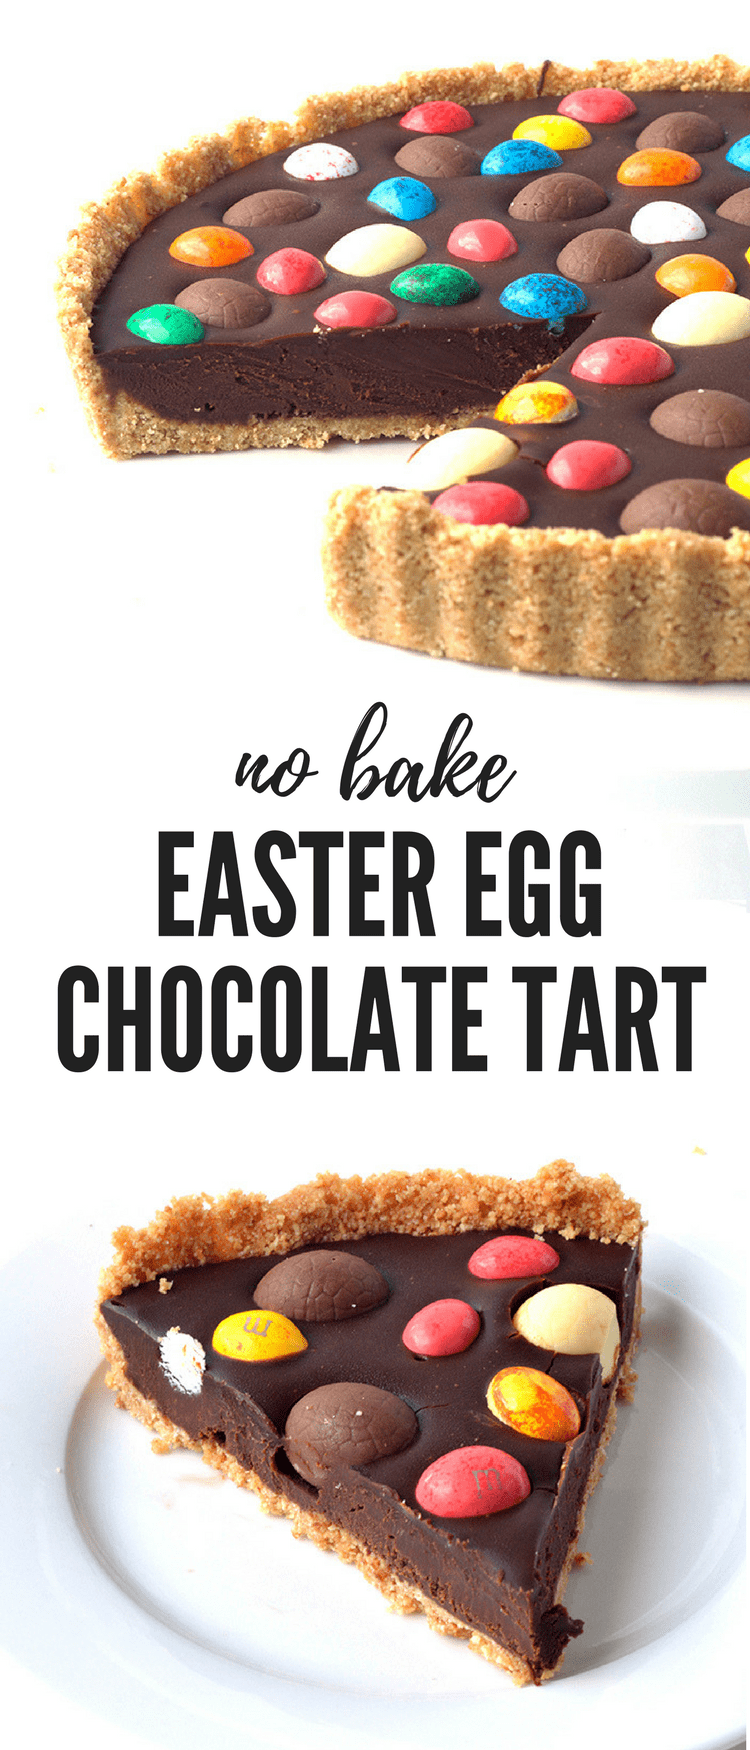 The ultimate Easter dessert right here! Delicious no bake Chocolate Ganache Tart topped with chocolate Easter eggs. Recipe from sweetestmenu.com #easter #chocolate #dessert #eastereggs